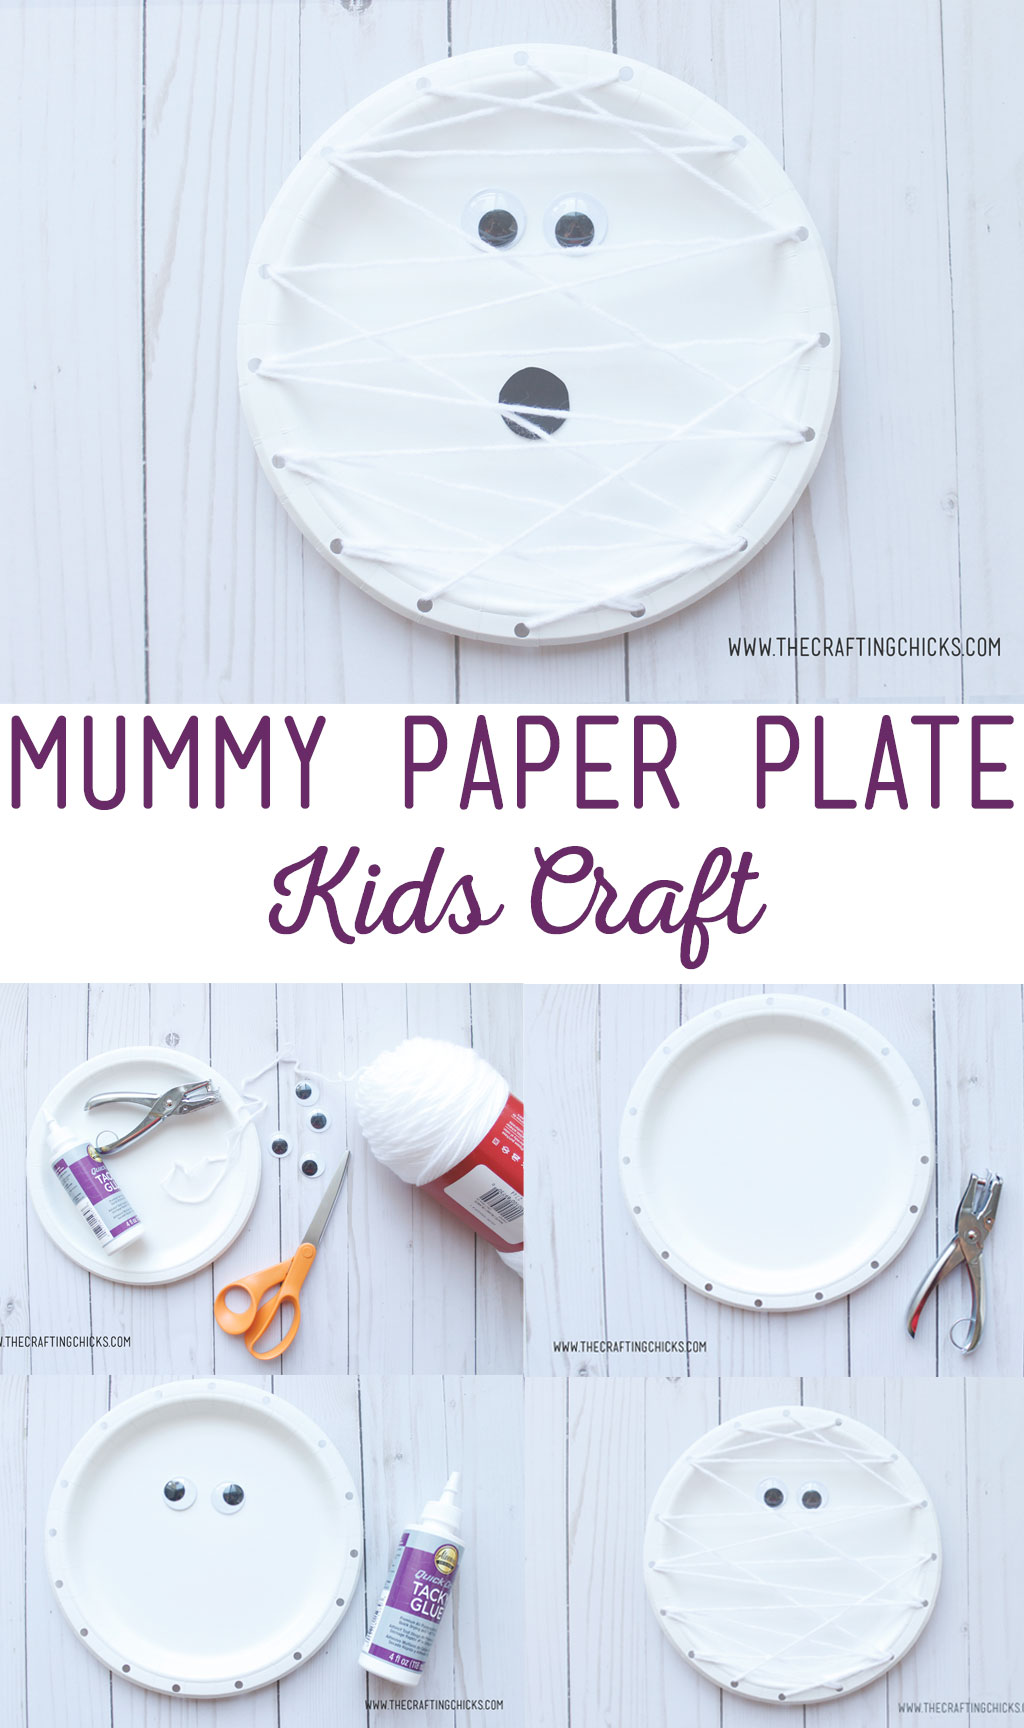 Mummy Paper Plate Kids Craft is a great way for kids to learn how to weave with yarn. This easy craft is great for children of all ages, starting in preschool. #kidscrafts #kidspaperplatecraft #halloweenkidscraft